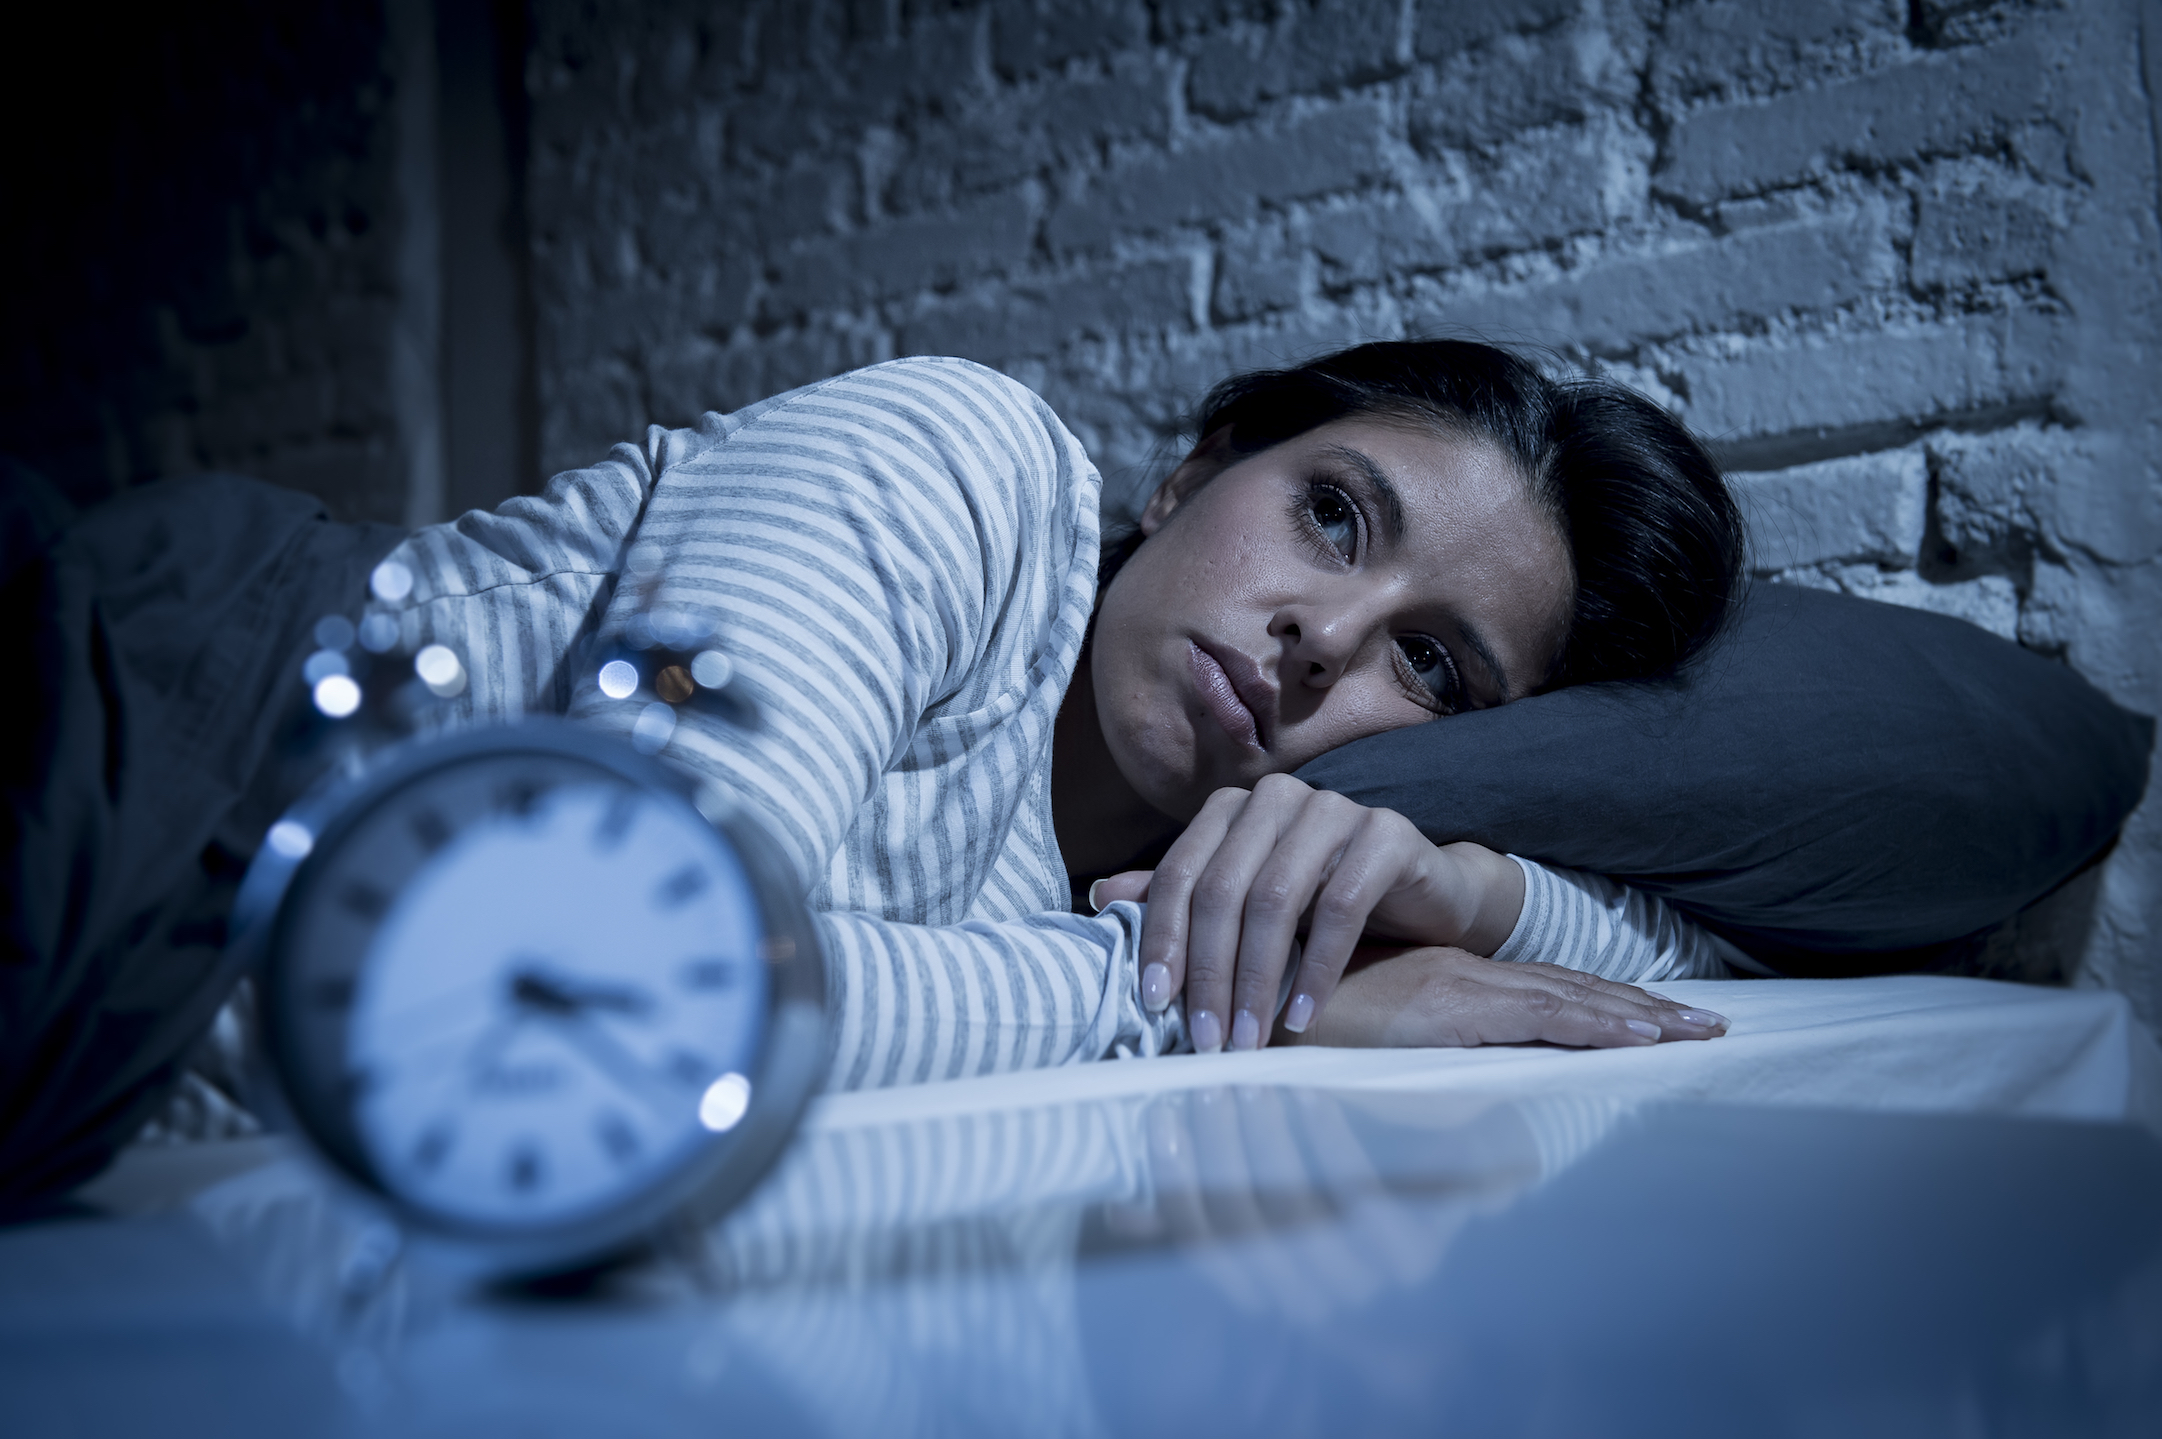 Inadequate sleep was revealed to lead to poor memory and increased risk of depression, stress, and anxiety.